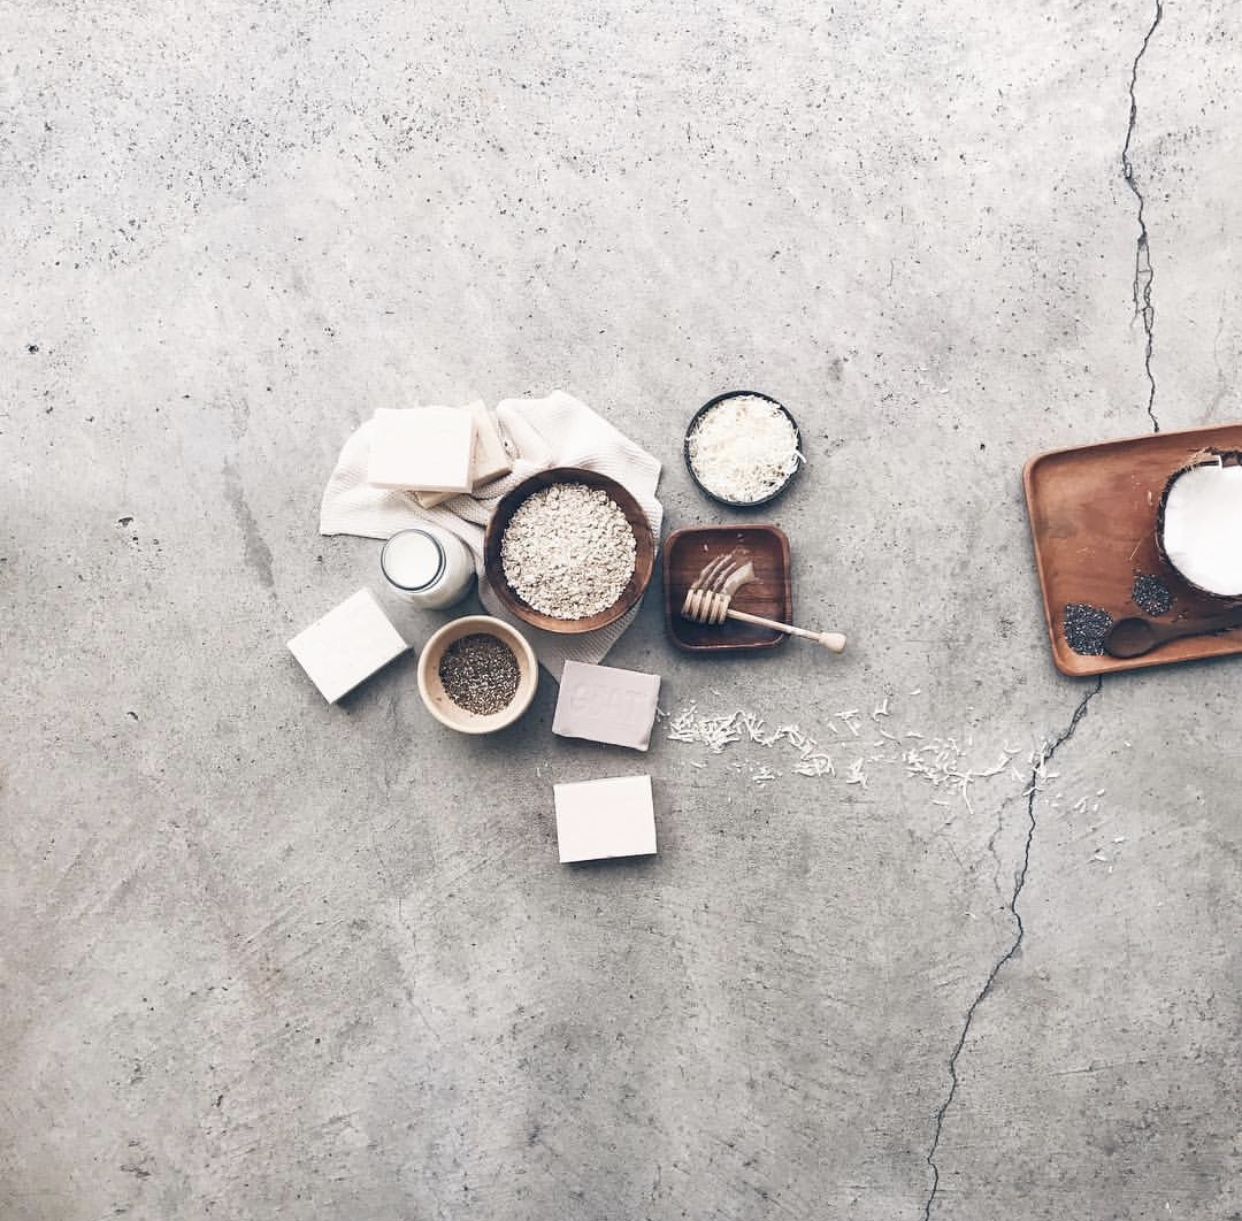 The concrete carport floor provides the perfect amount of texture, interest and aged imperfection for this collection of natural products. By  @underthekowhai